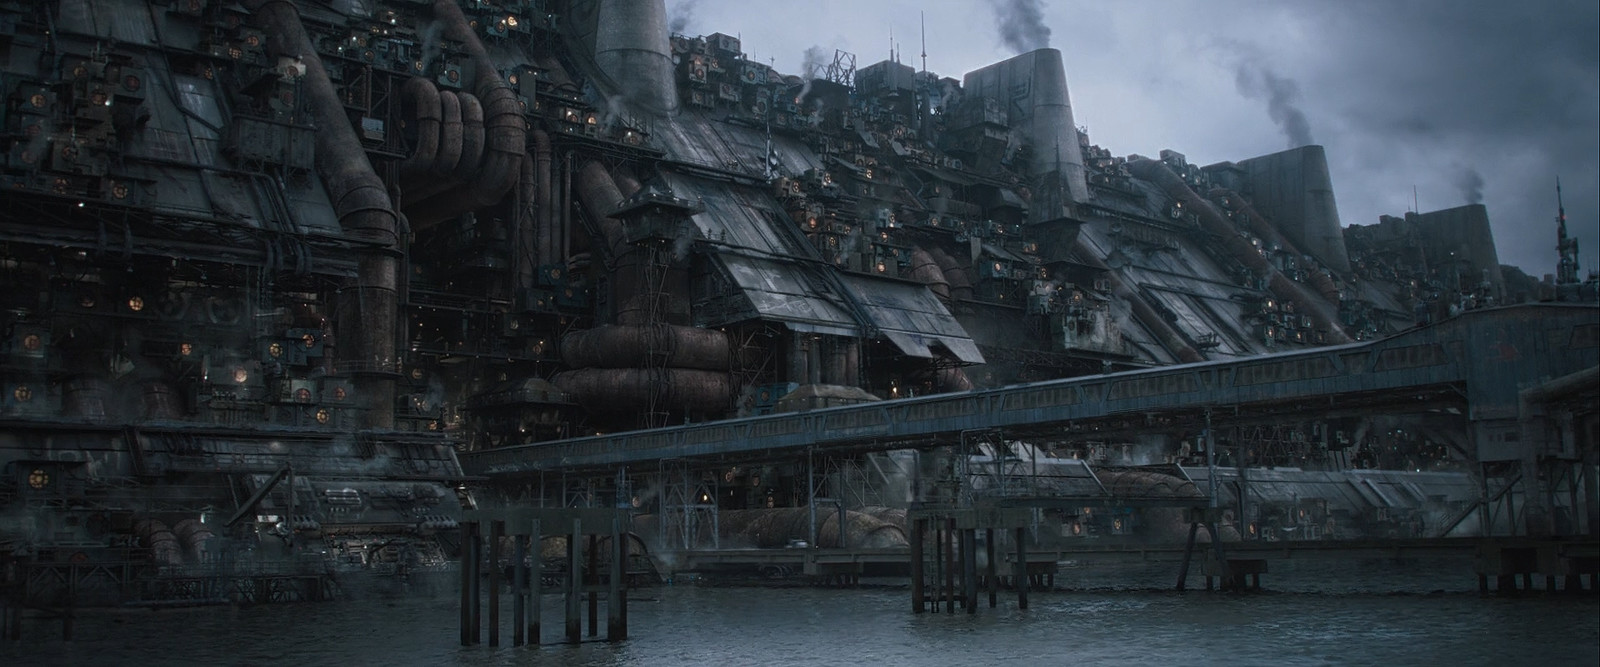 (Solo: A Star Wars Story - ILM) Corellia Starport _ worked closely with Gen to make modular structures for the whole Favela